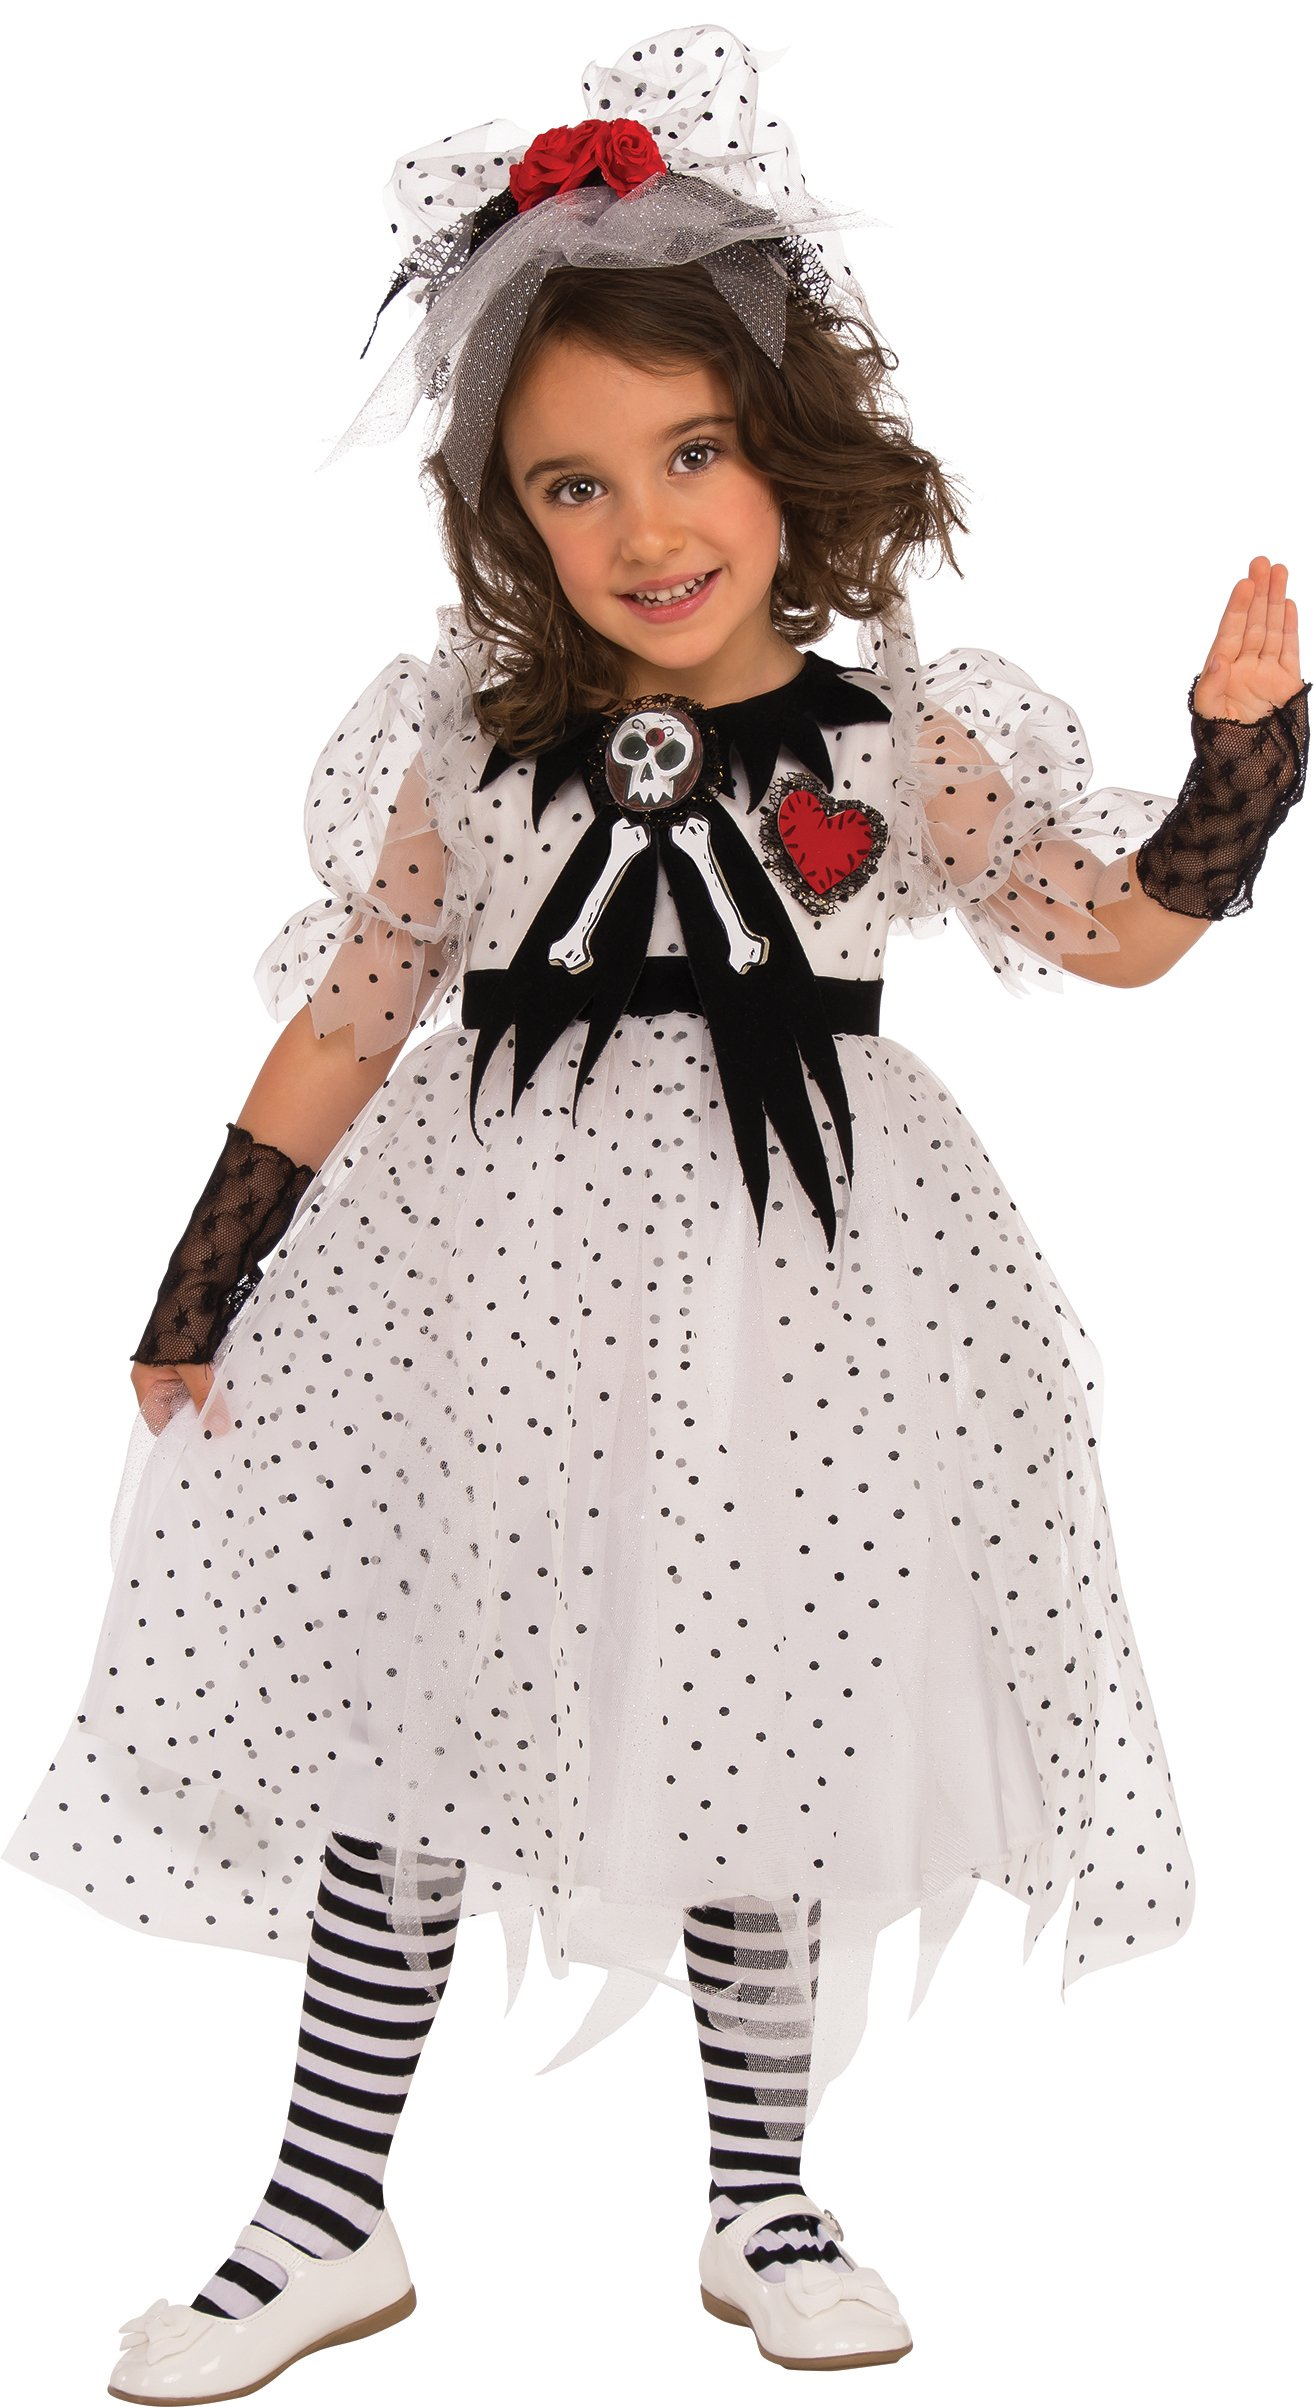 Rubies Costume Child's Ghost Girl Costume, Small, Multicolor